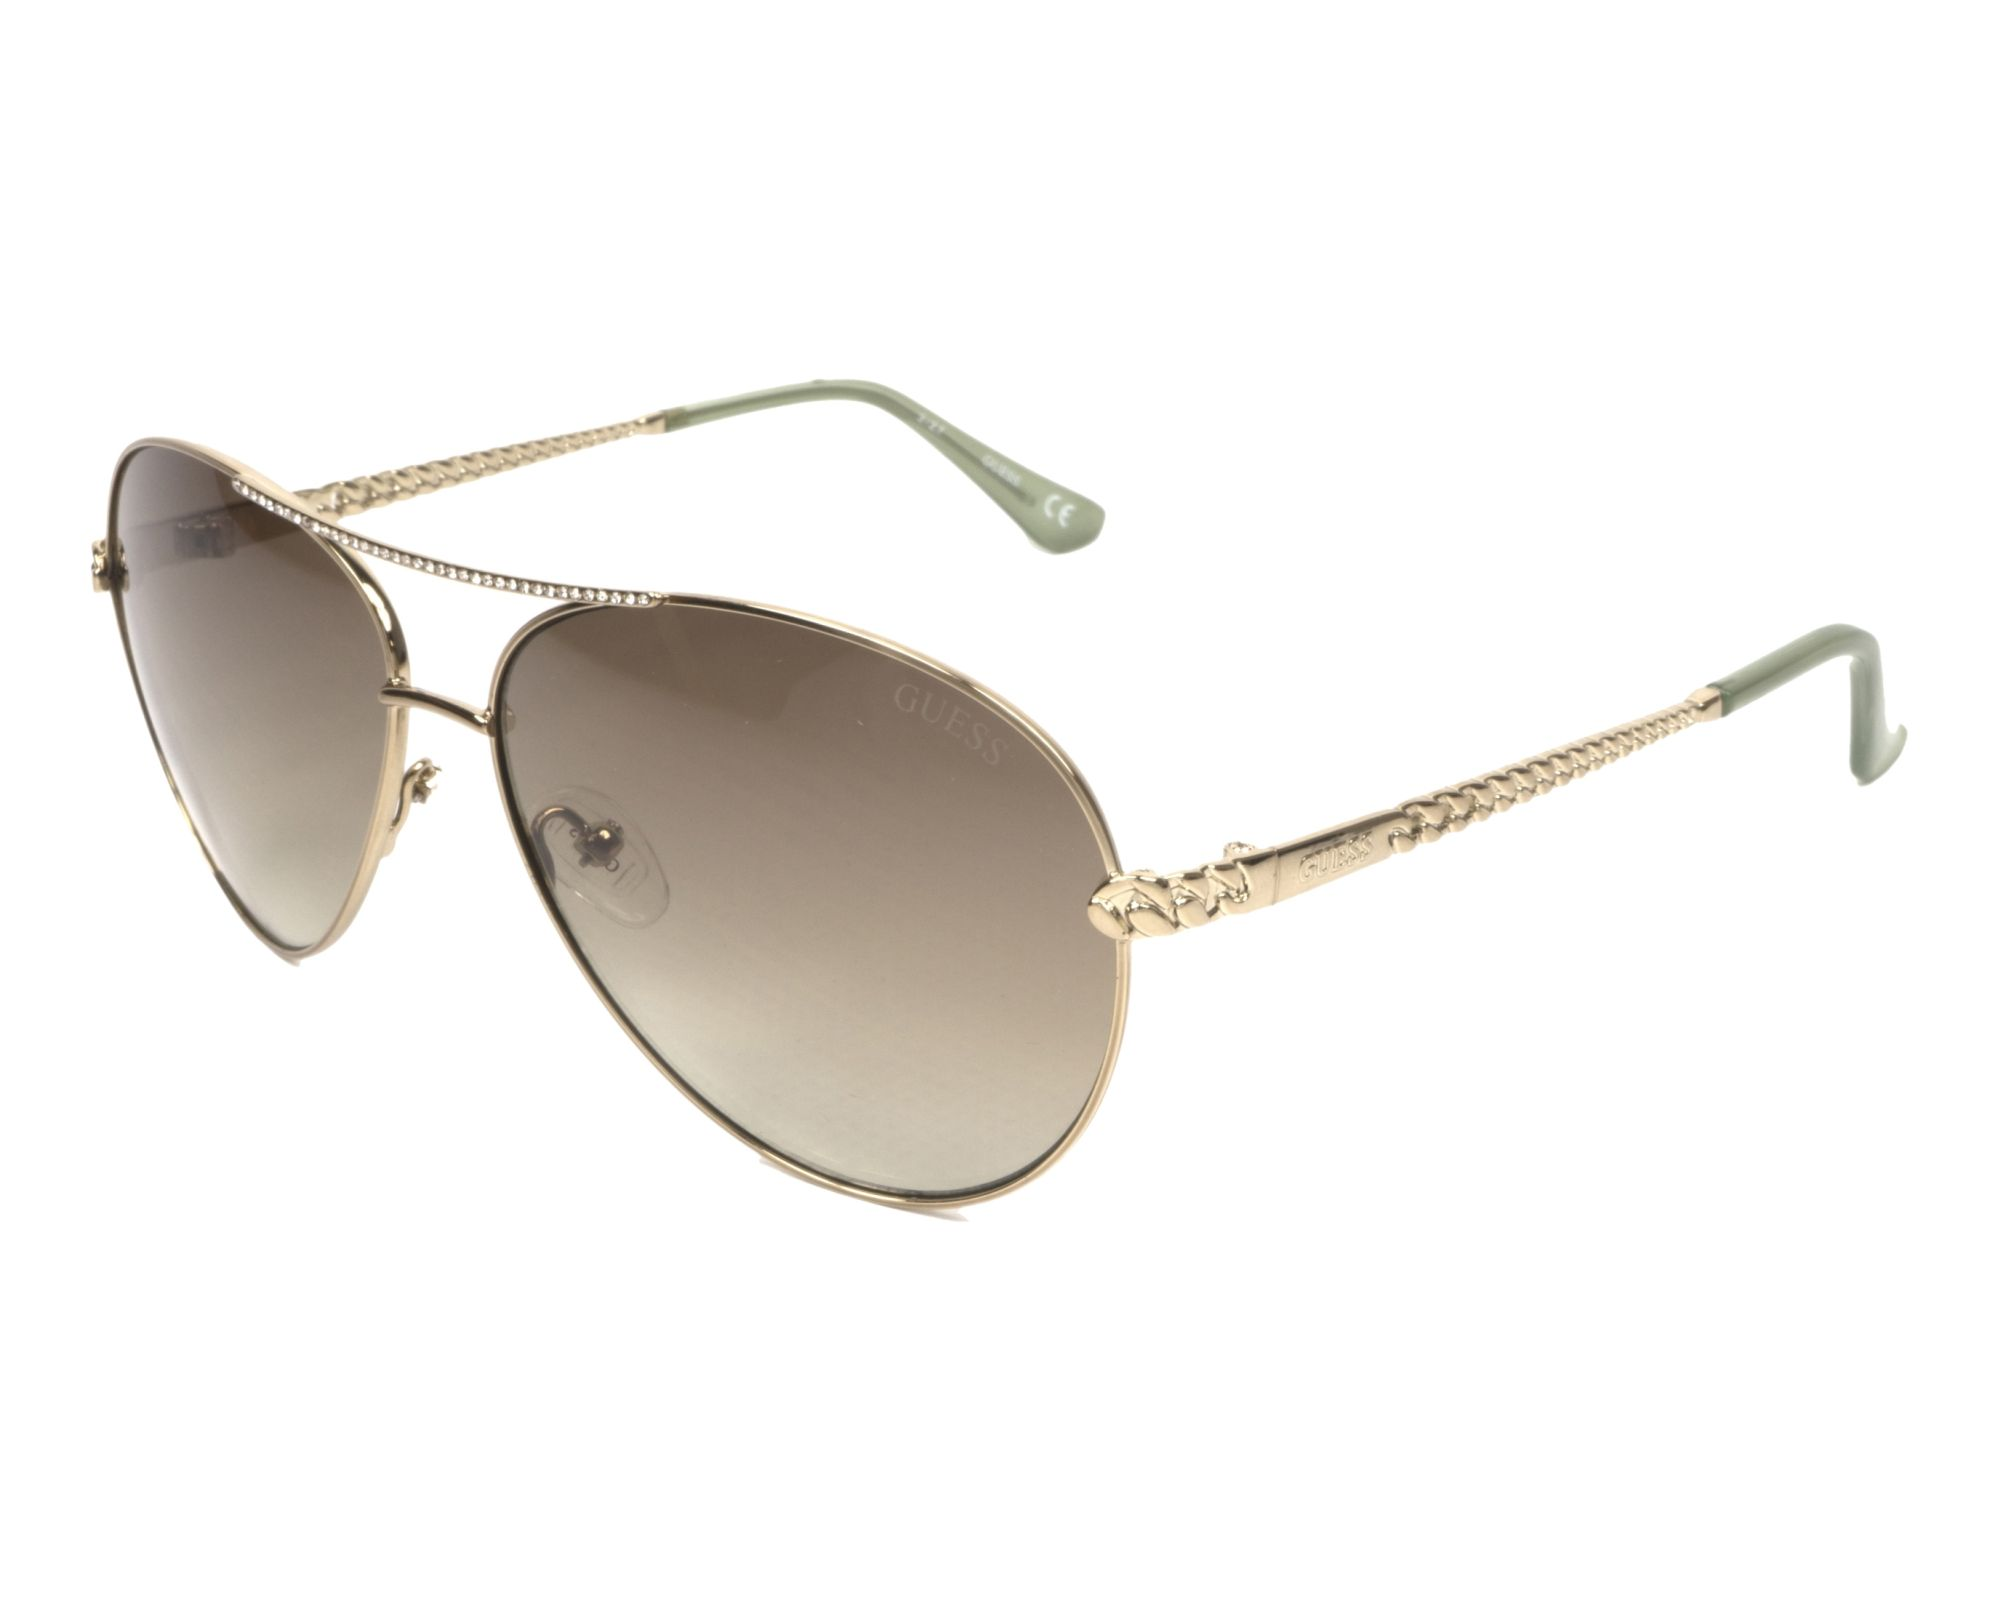 Sunglasses Guess GU-7470-S 32P 60-13 Gold Gold profile view 7da43e1641de